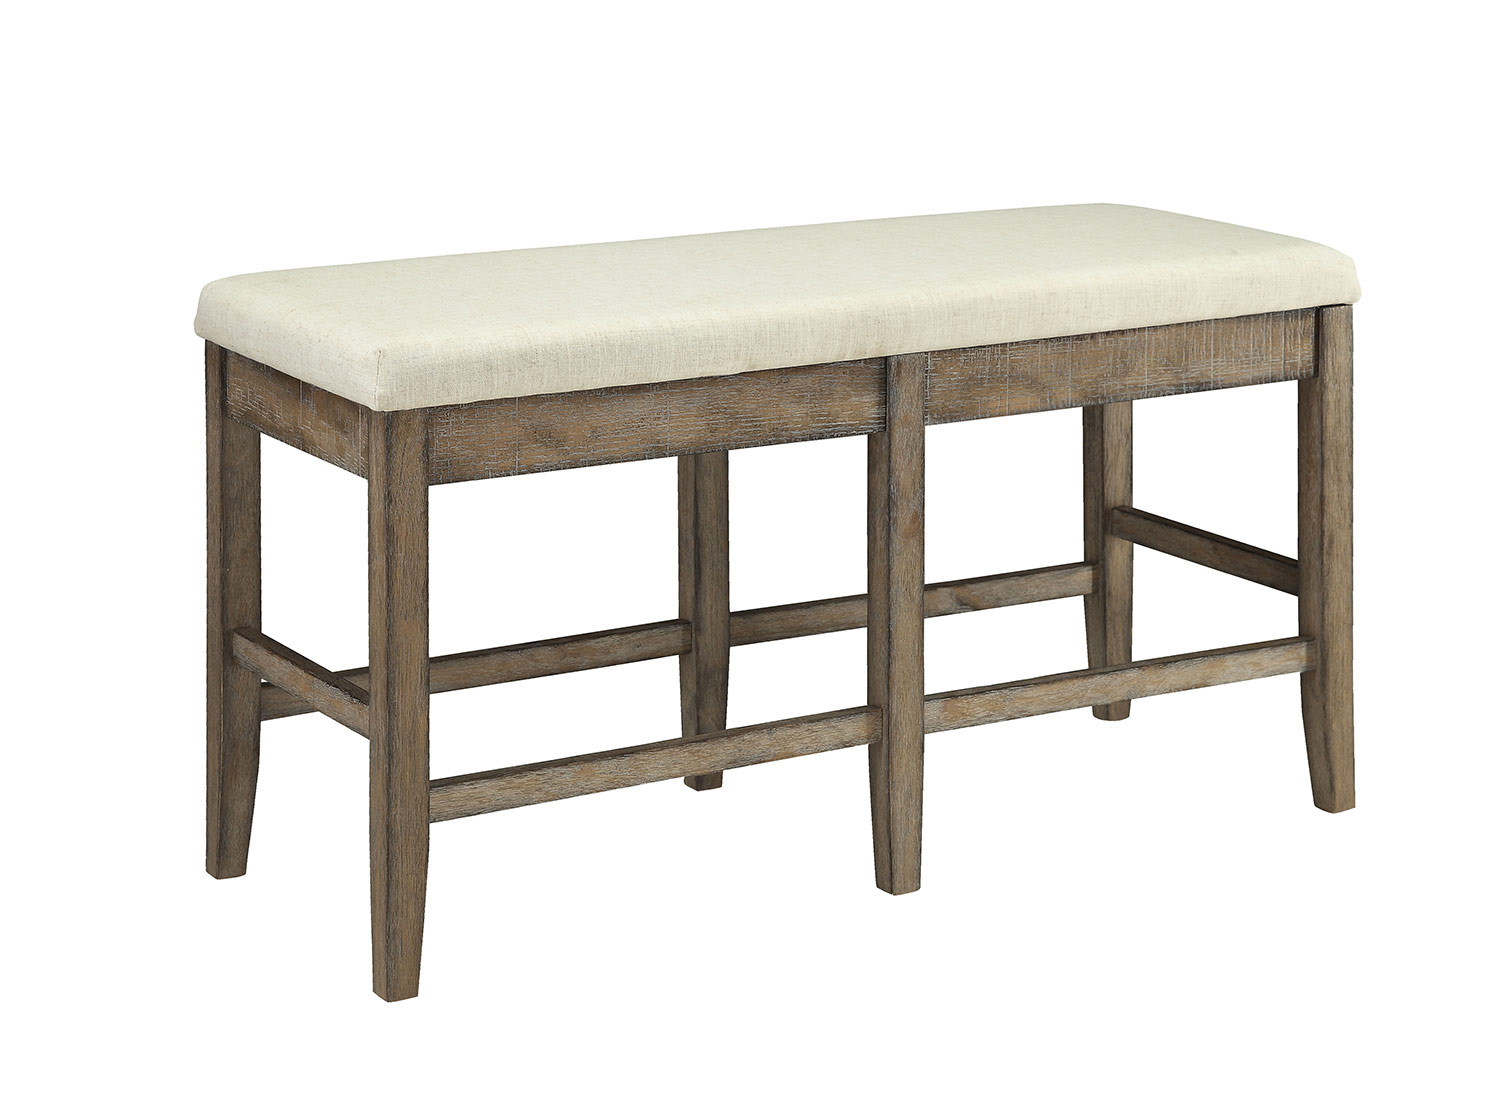 Acme Claudia Counter Height Bench - Beige Linen/Salvage Brown